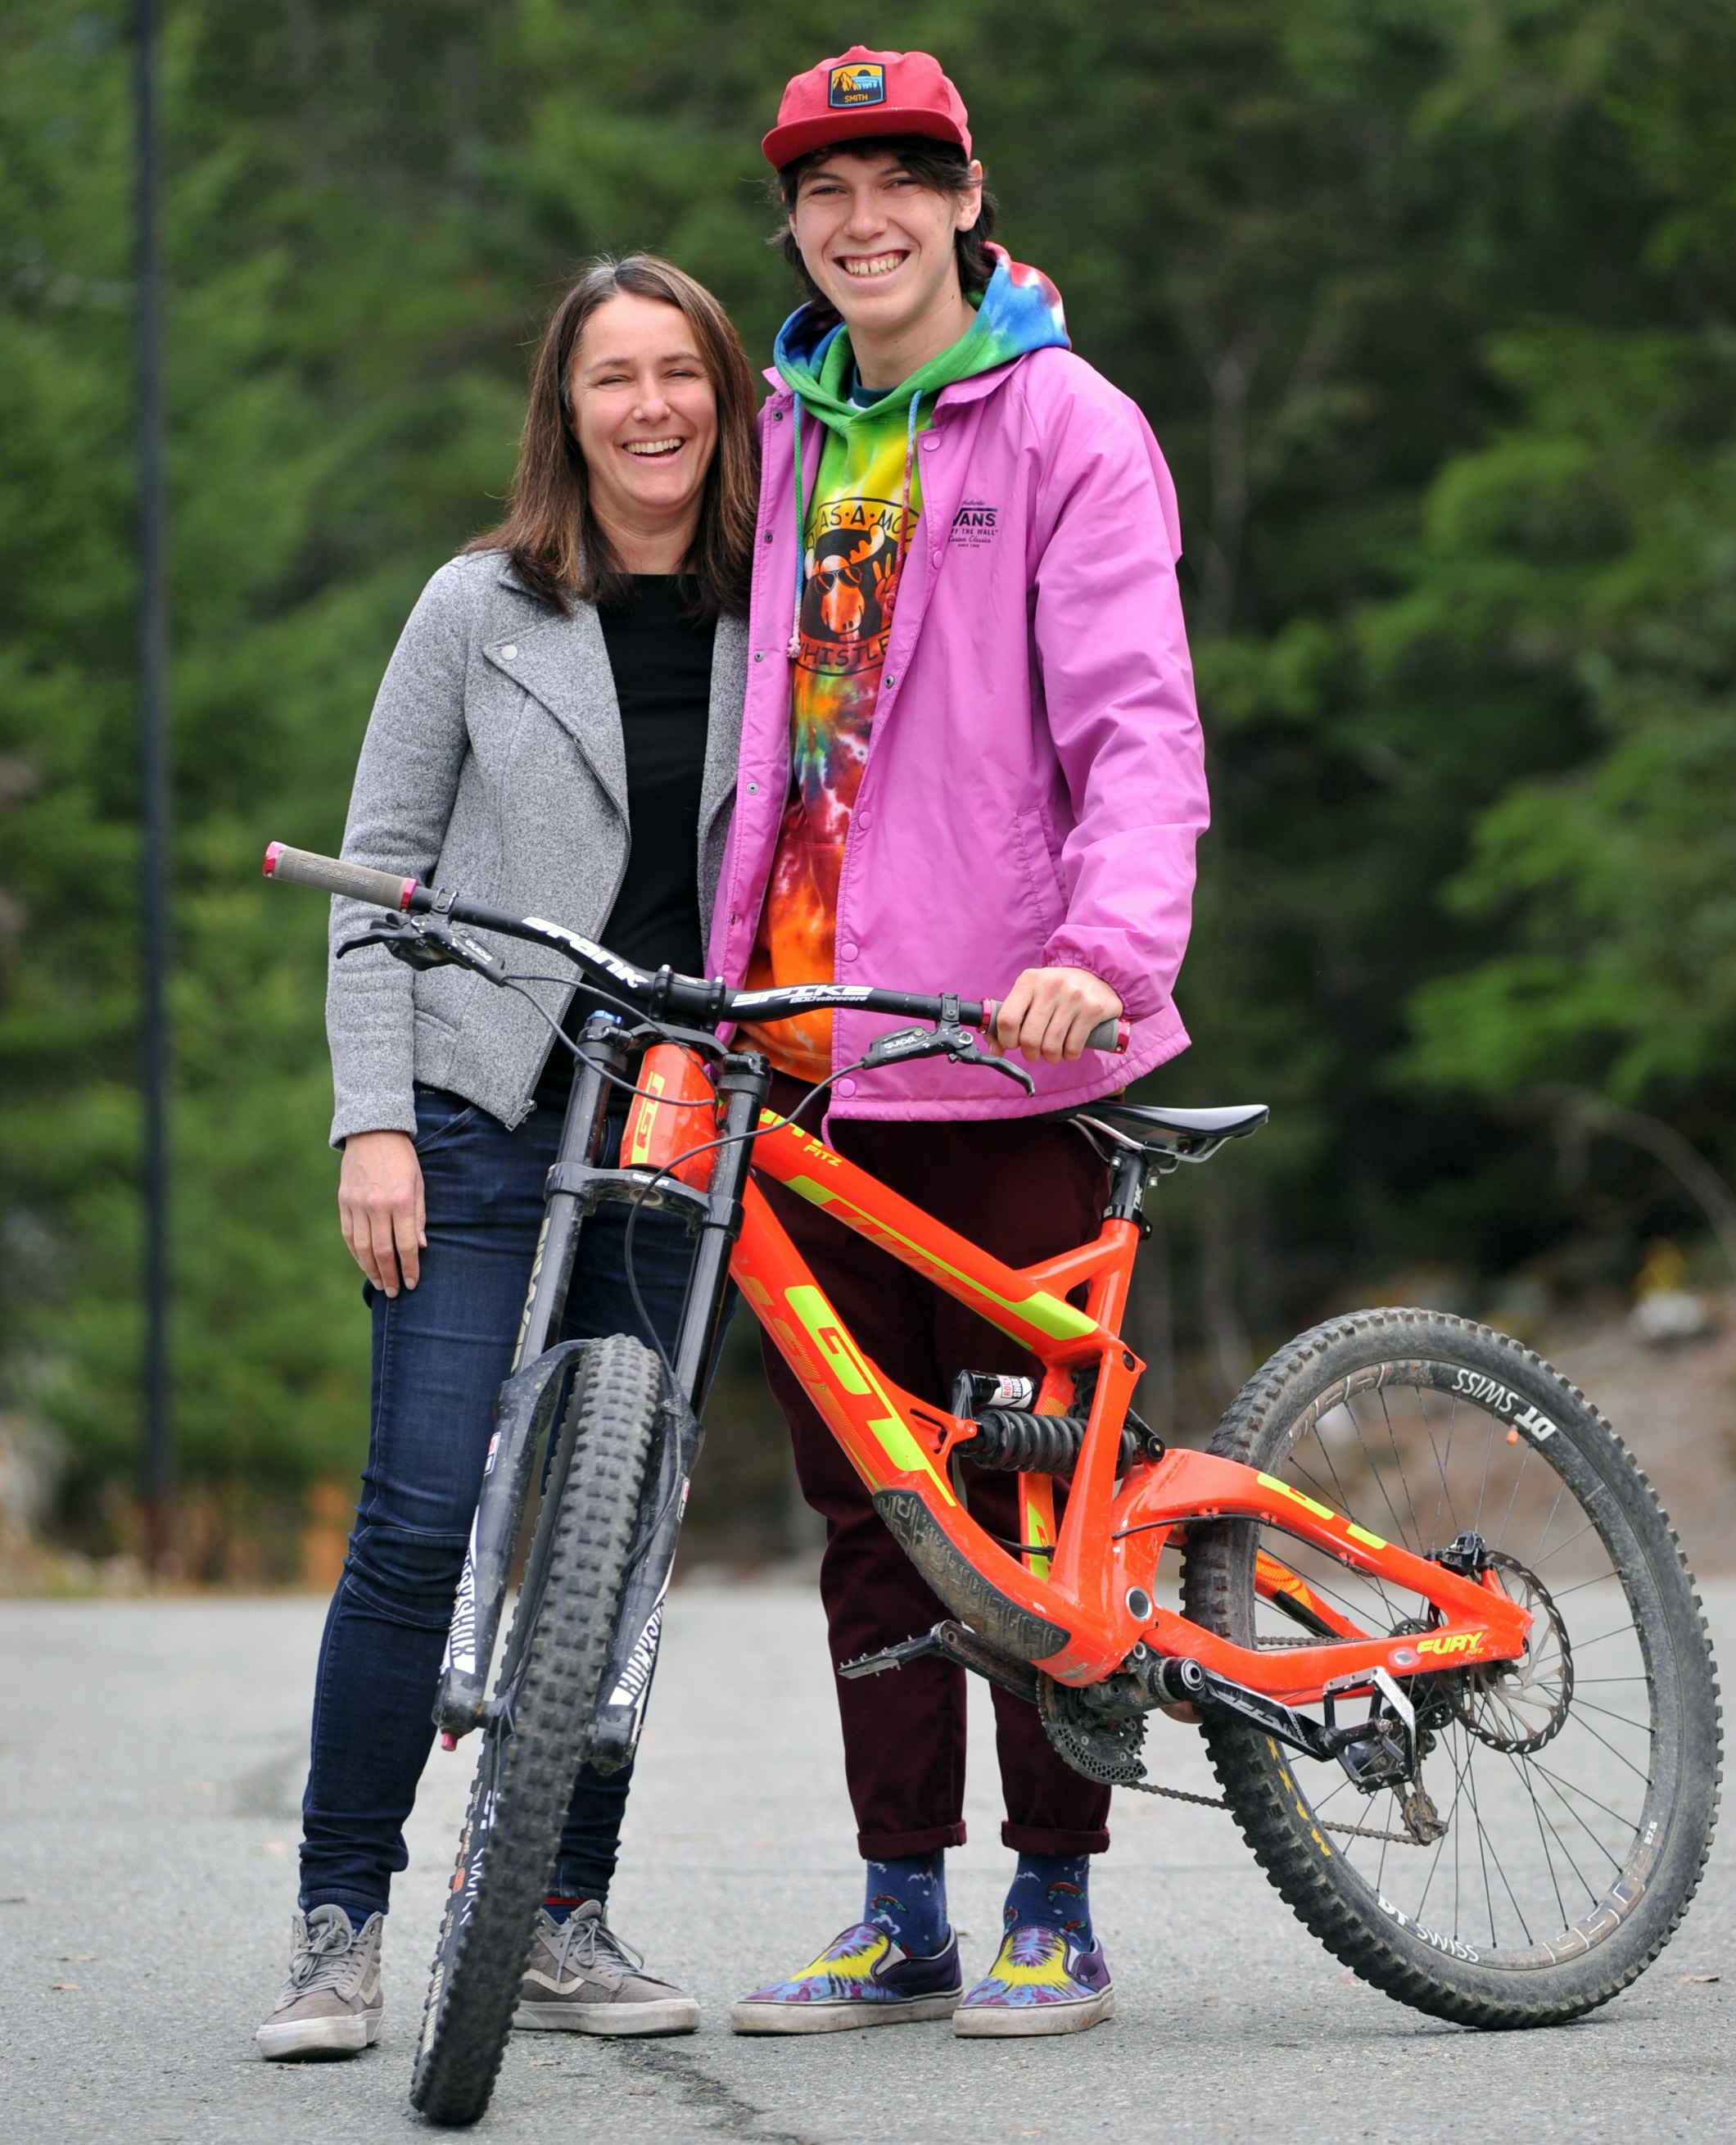 Dakota Williams with his mom, standing in front of a bicycle